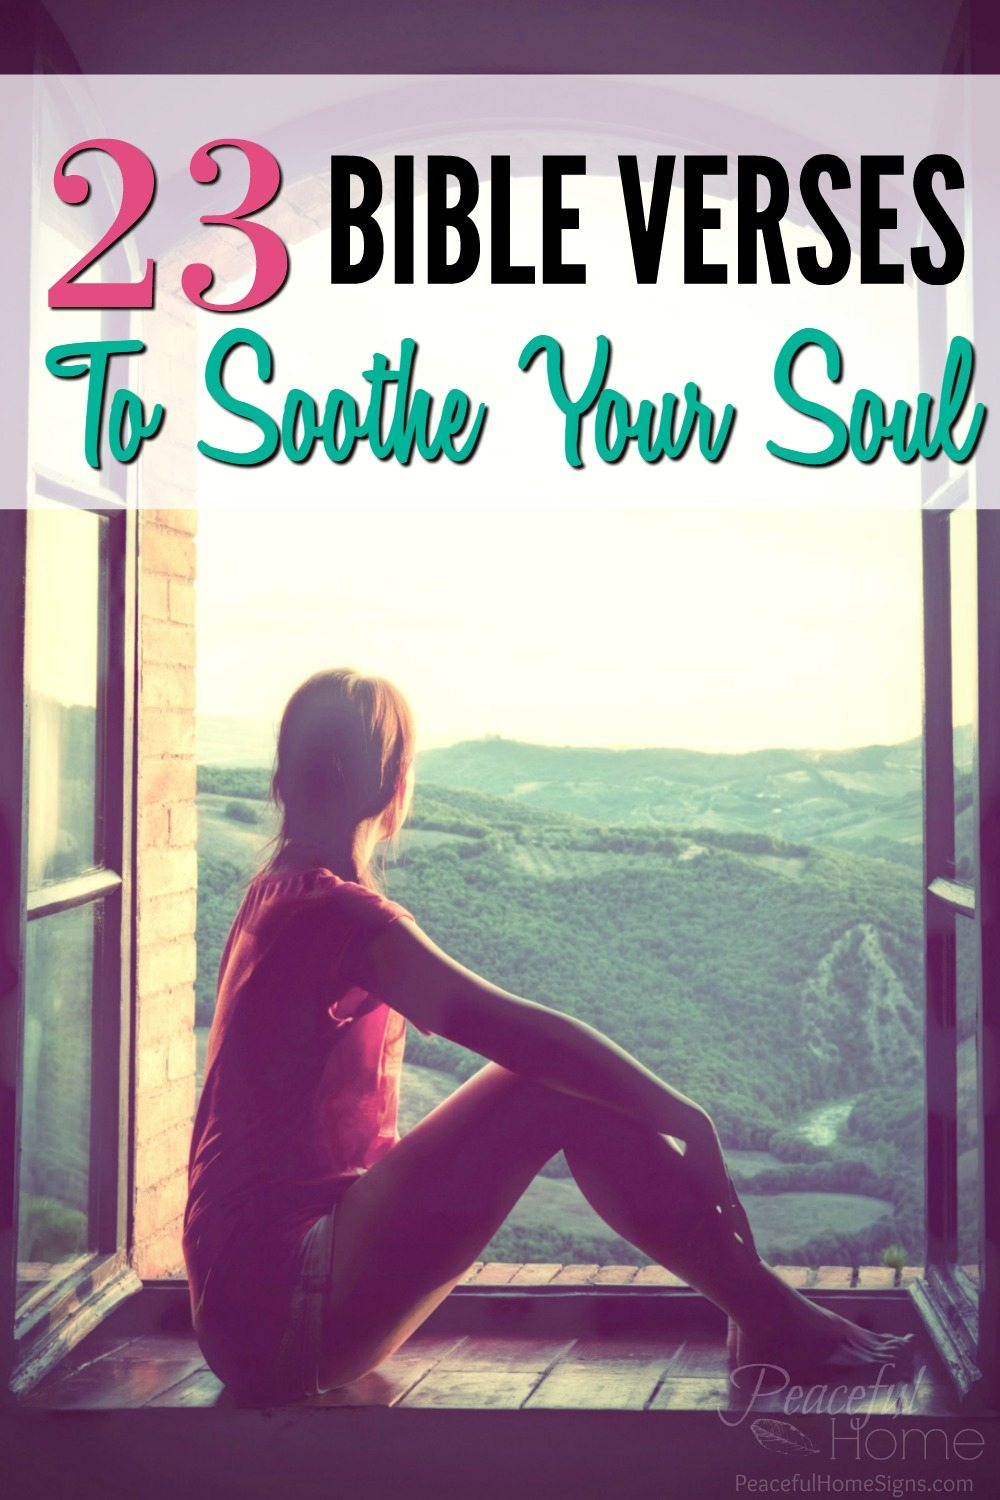 23 Bible Verses to Soothe Your Soul | Scriptures for Stress | Bible Verses for worry, tension, heaviness, burden | God's answers | Scripture lists